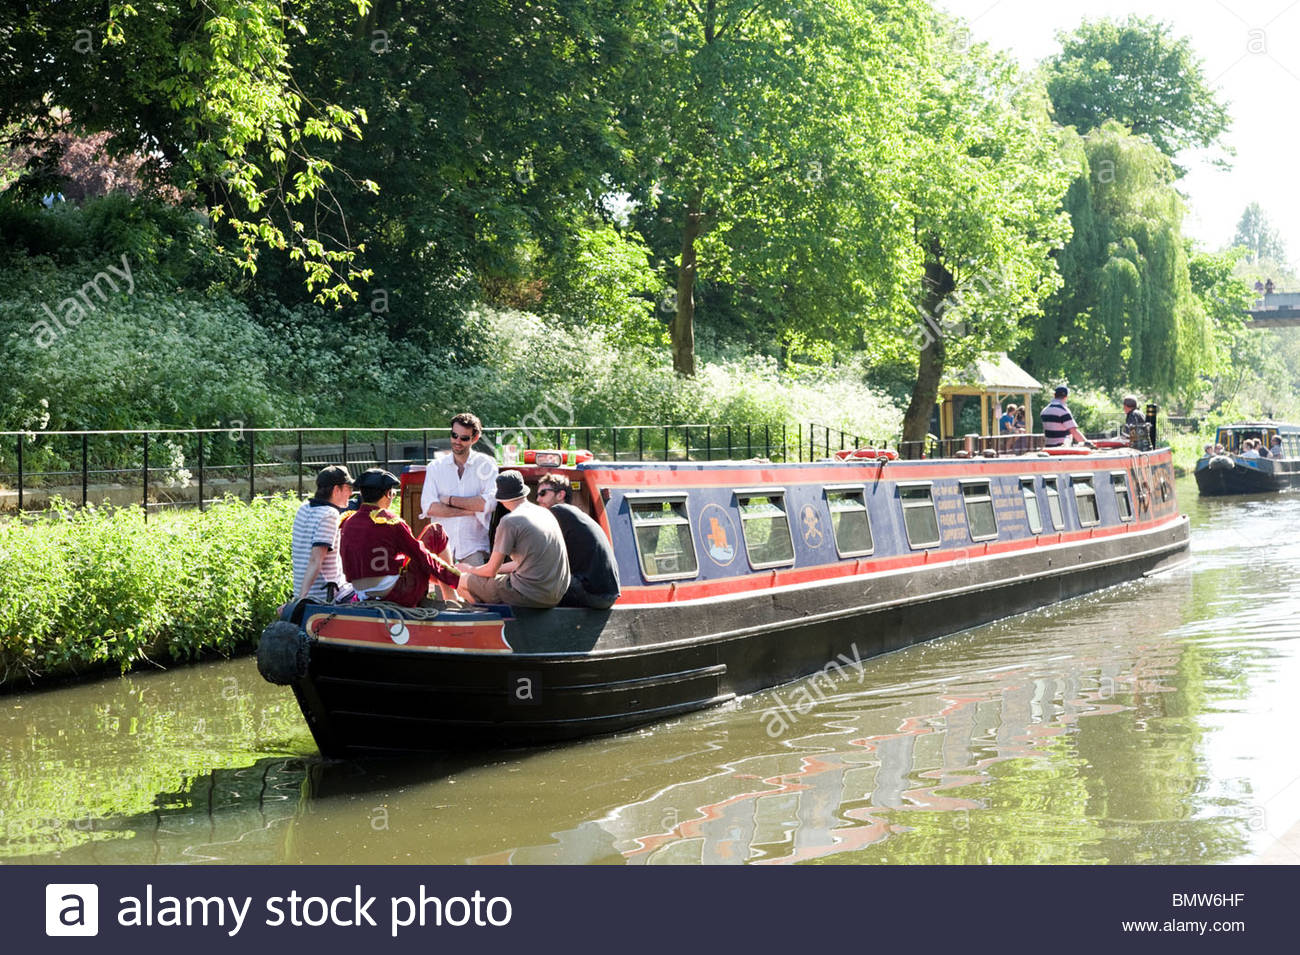 Narrowboat travelling down the Regent's Canal in London, England, UK - Stock Image